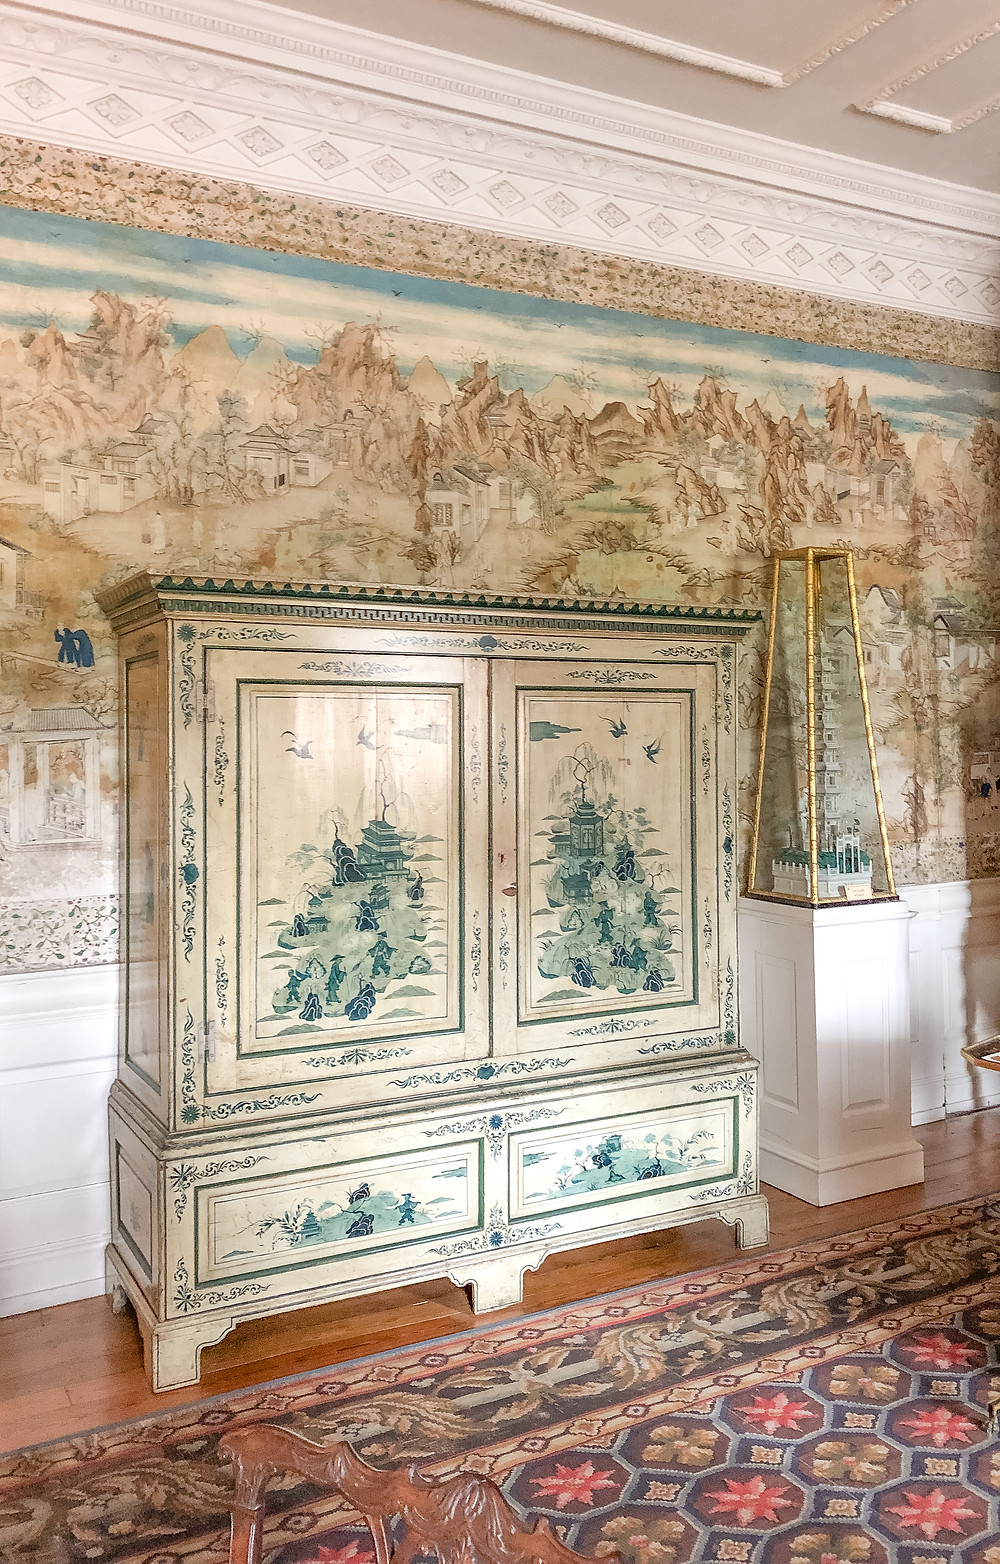 Chinese cabinet at Blickling Hall